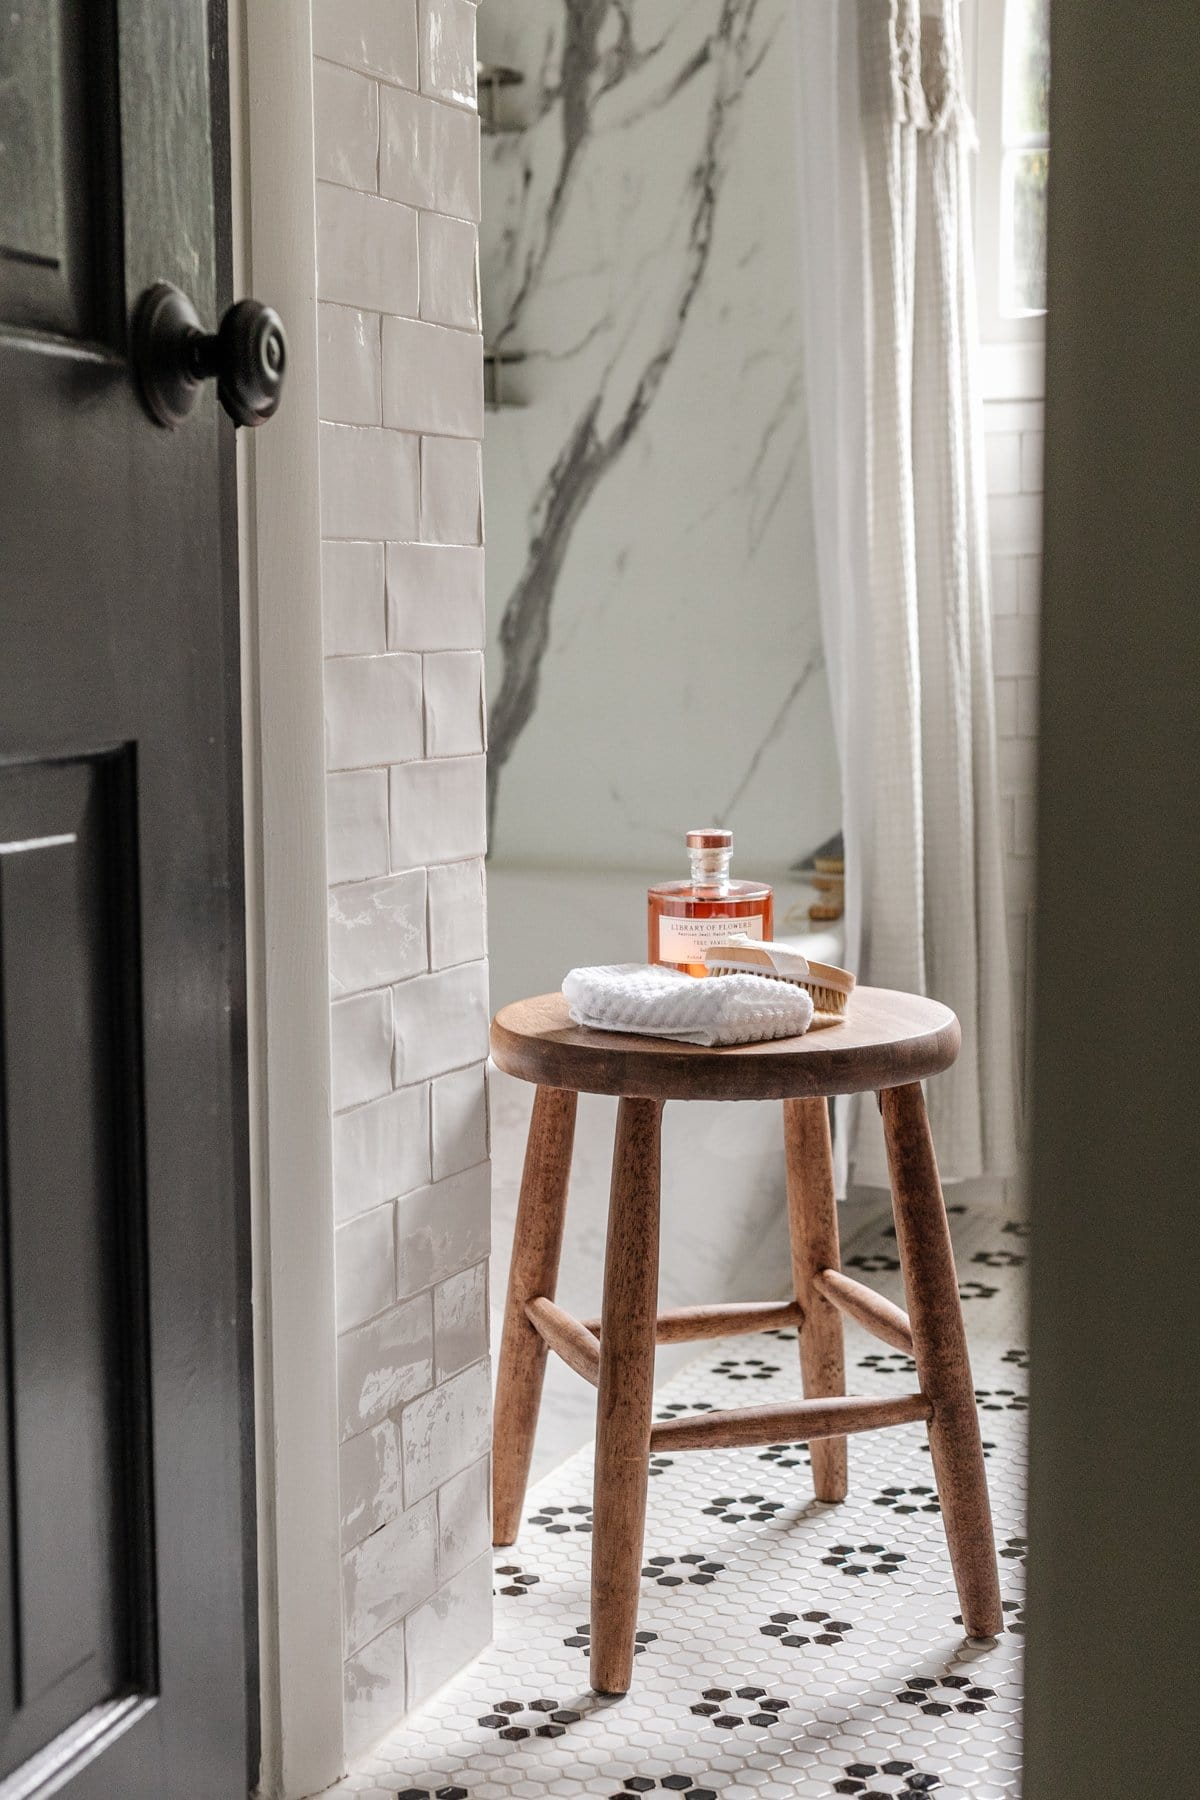 bathroom stool with toiletries and black and white bathroom tile